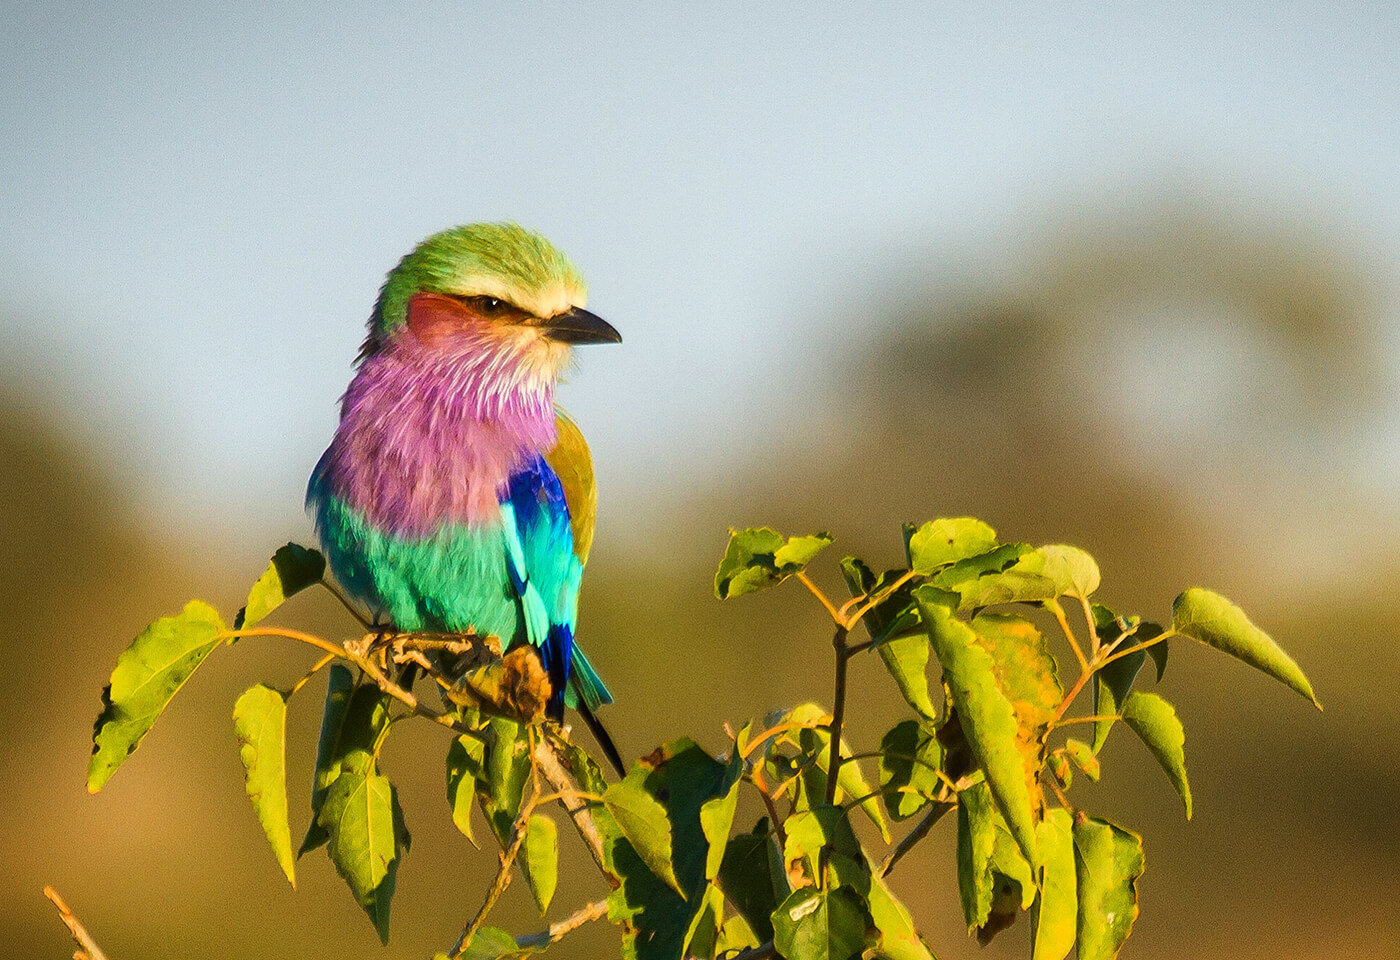 Colourful Roller bird in a tree